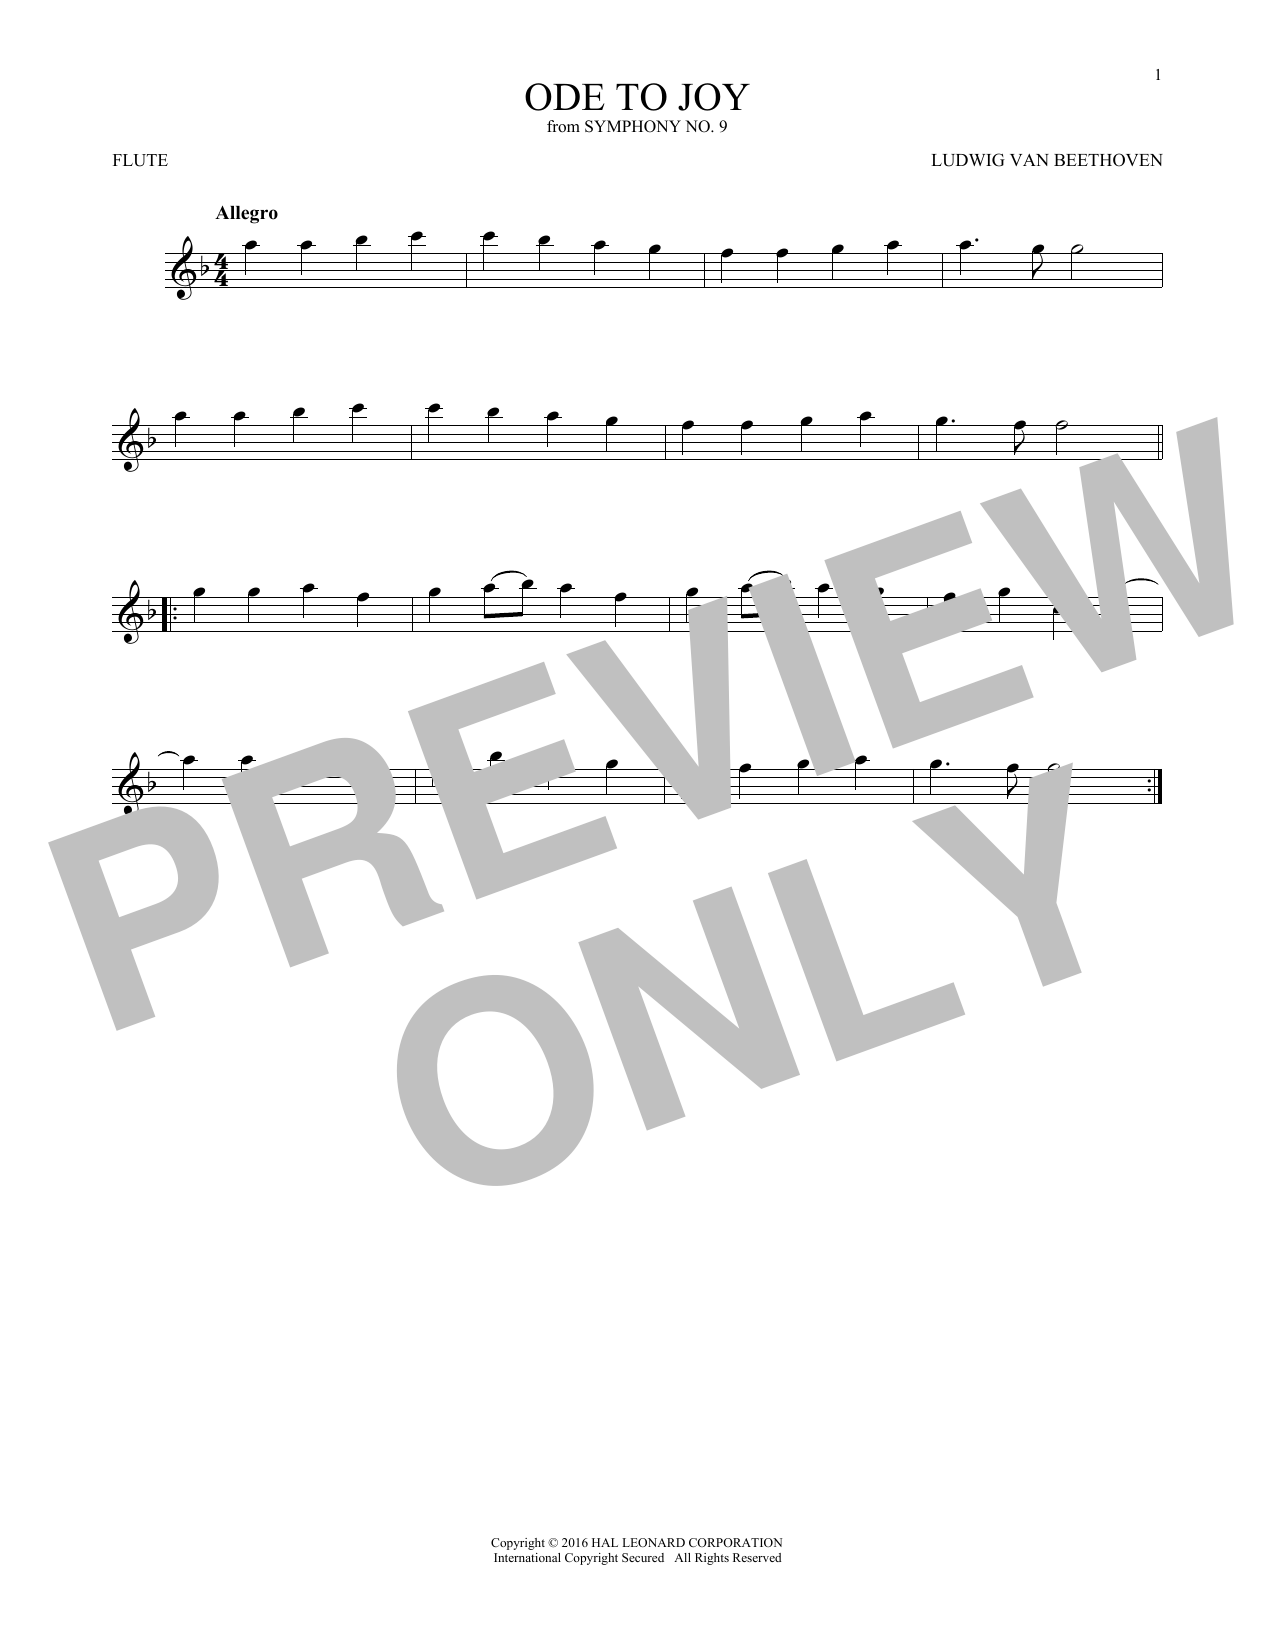 Ode To Joy (Flute Solo)